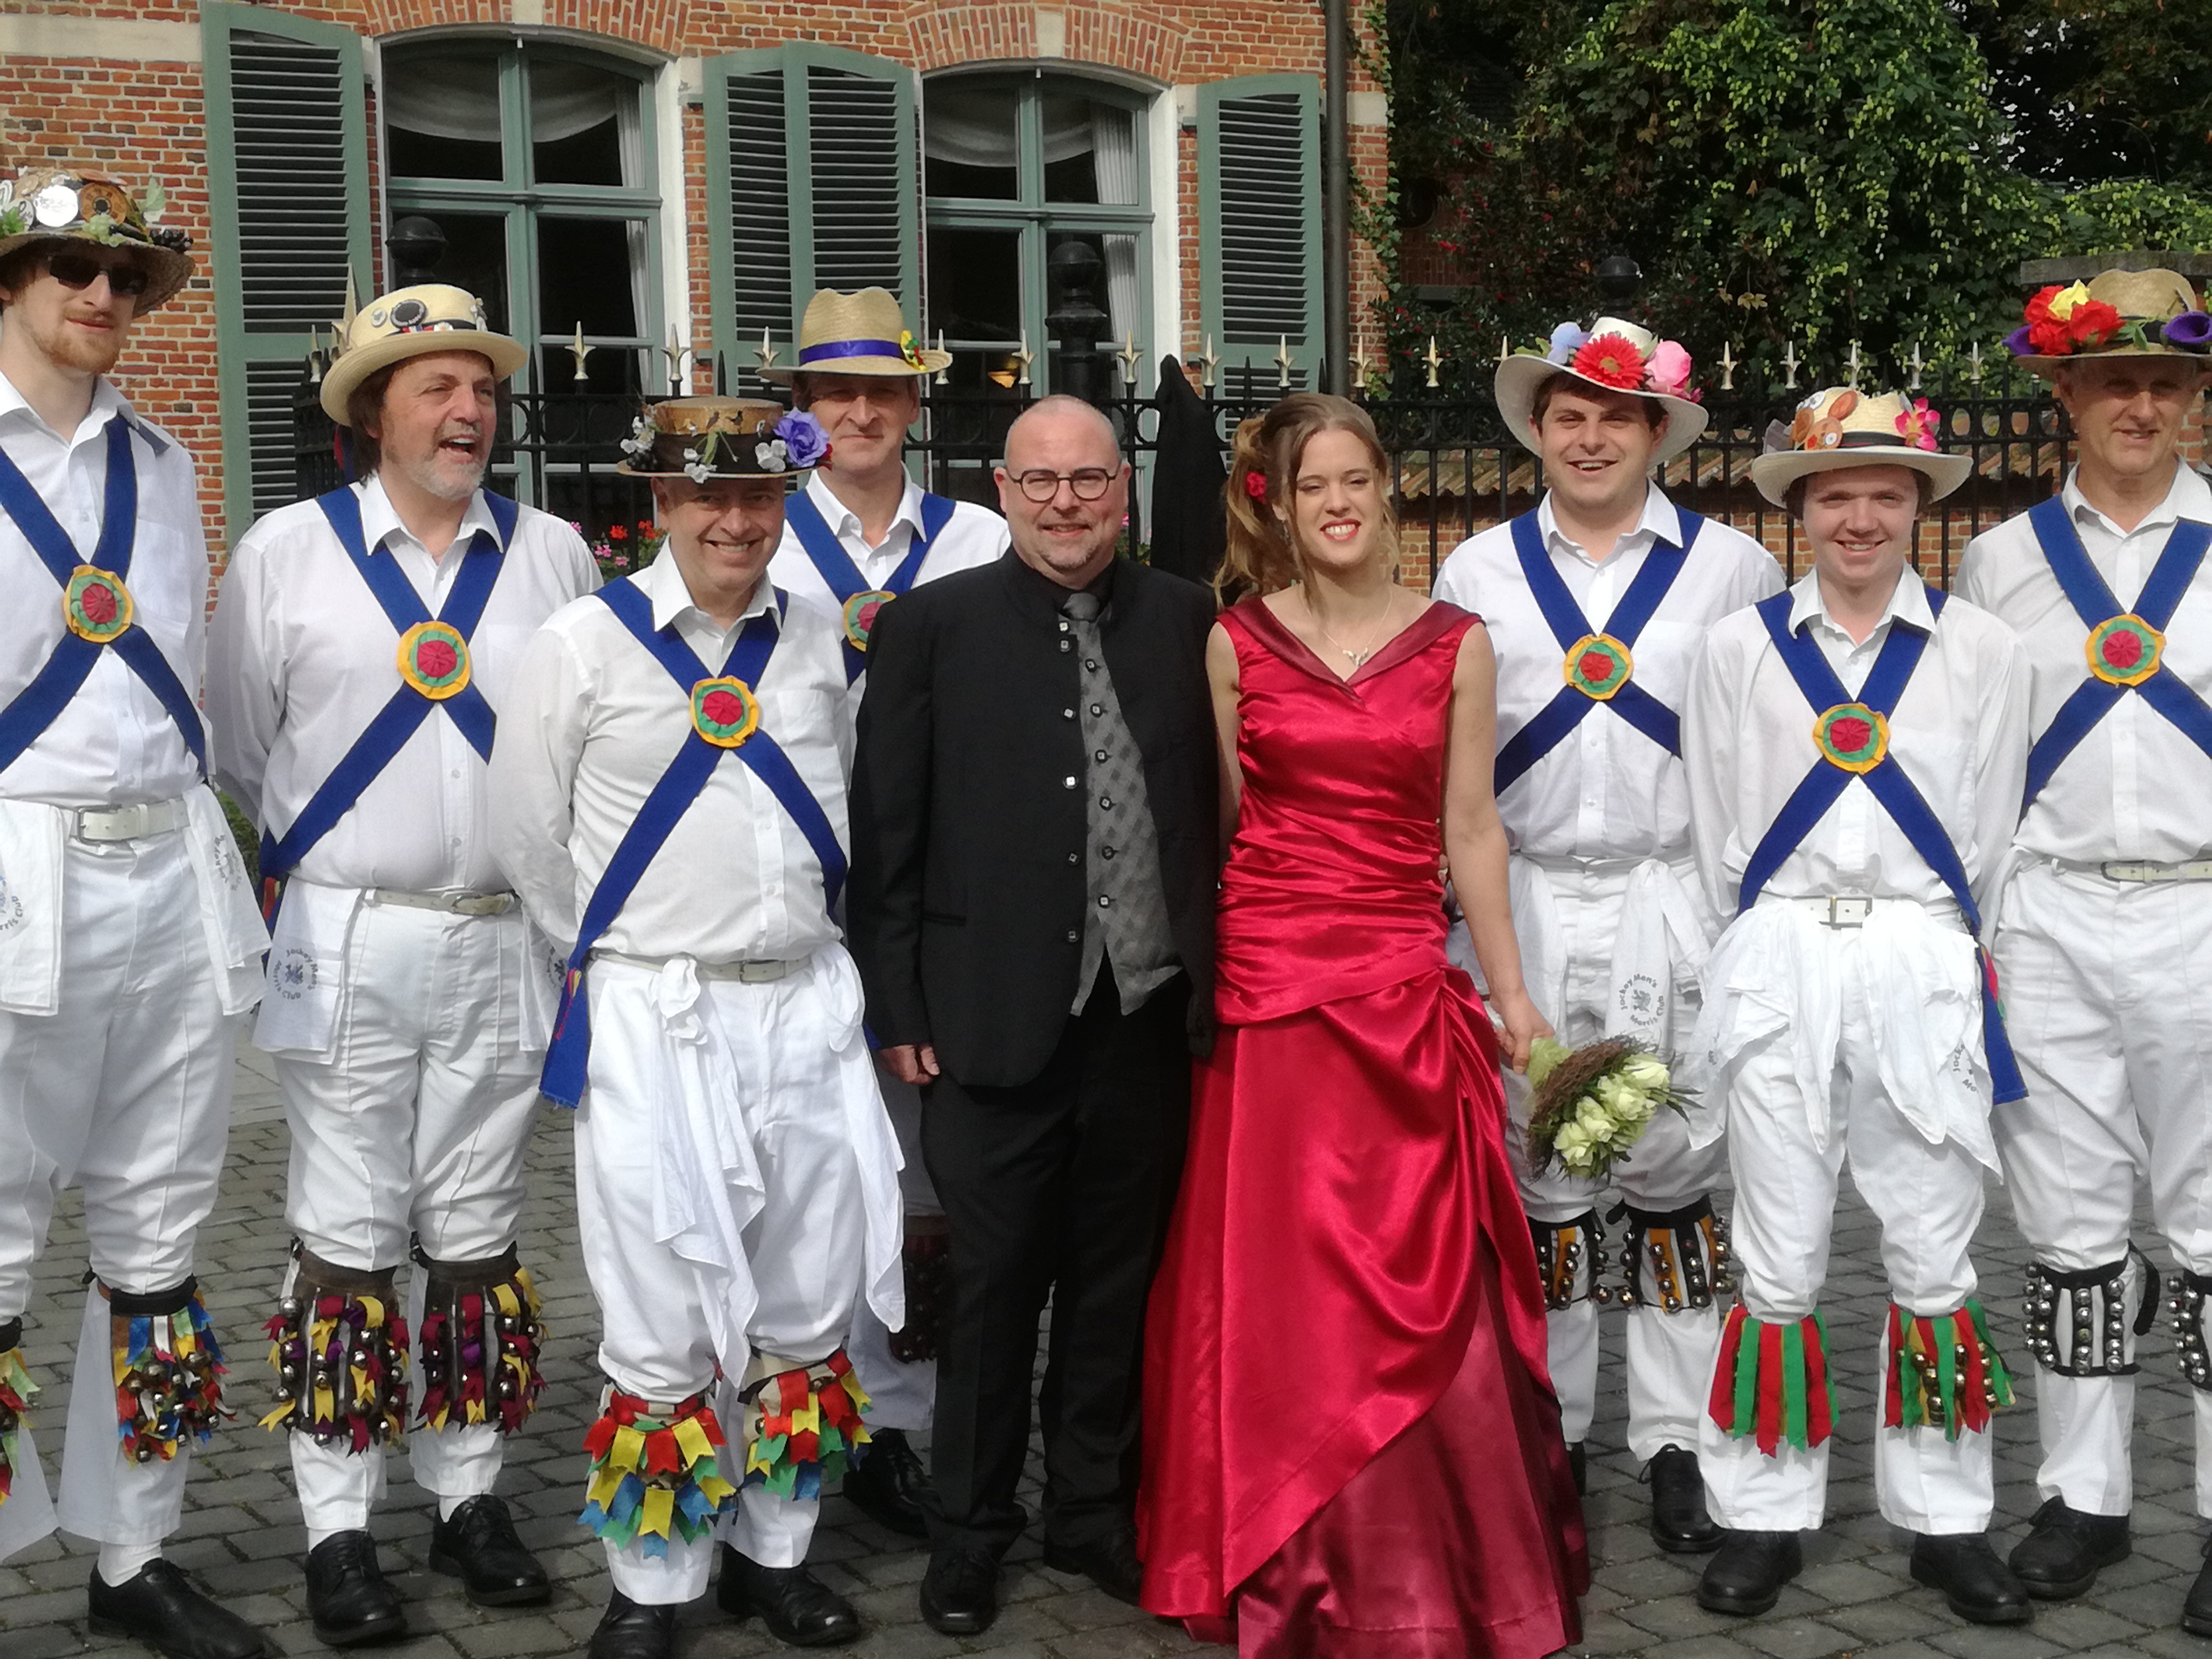 Lieven and Maria's Wedding - Flanders 9th Sept 2017